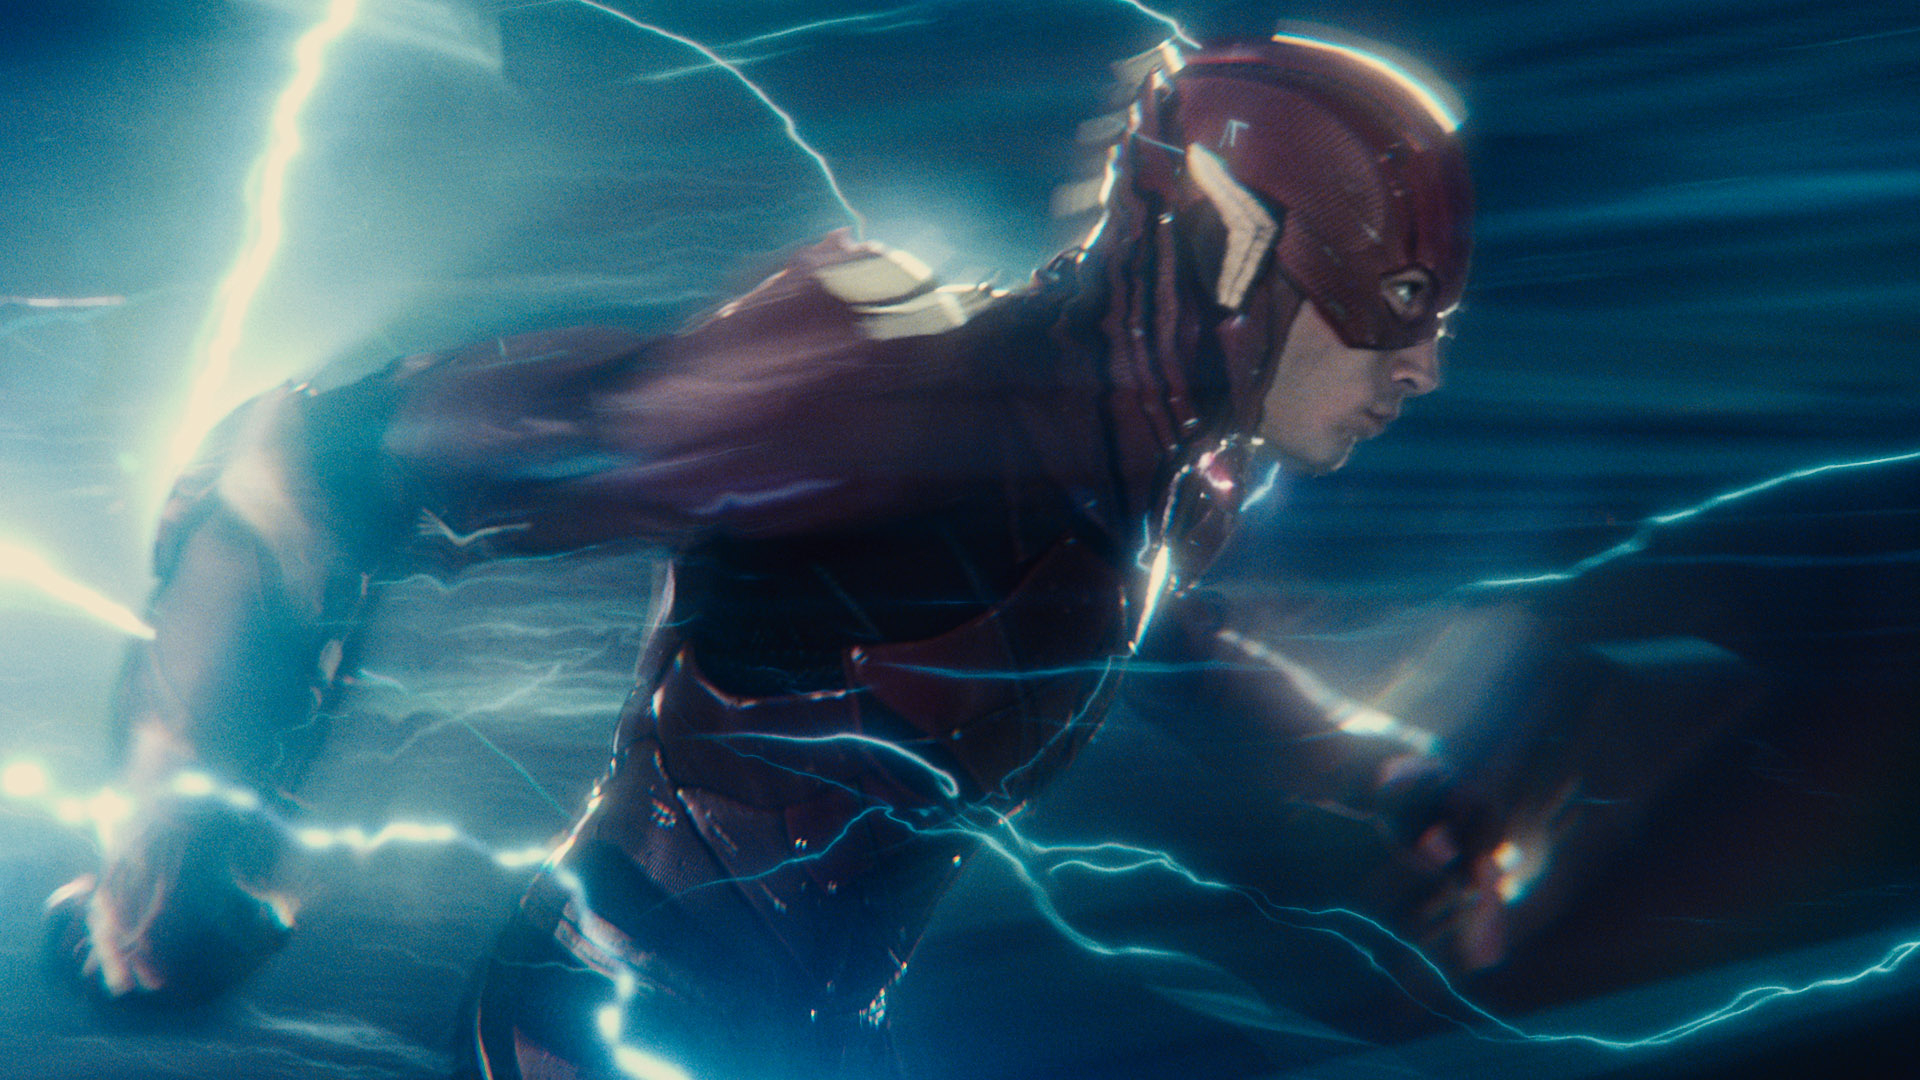 The Flash Movie Is Going To Restart the DC Film Universe